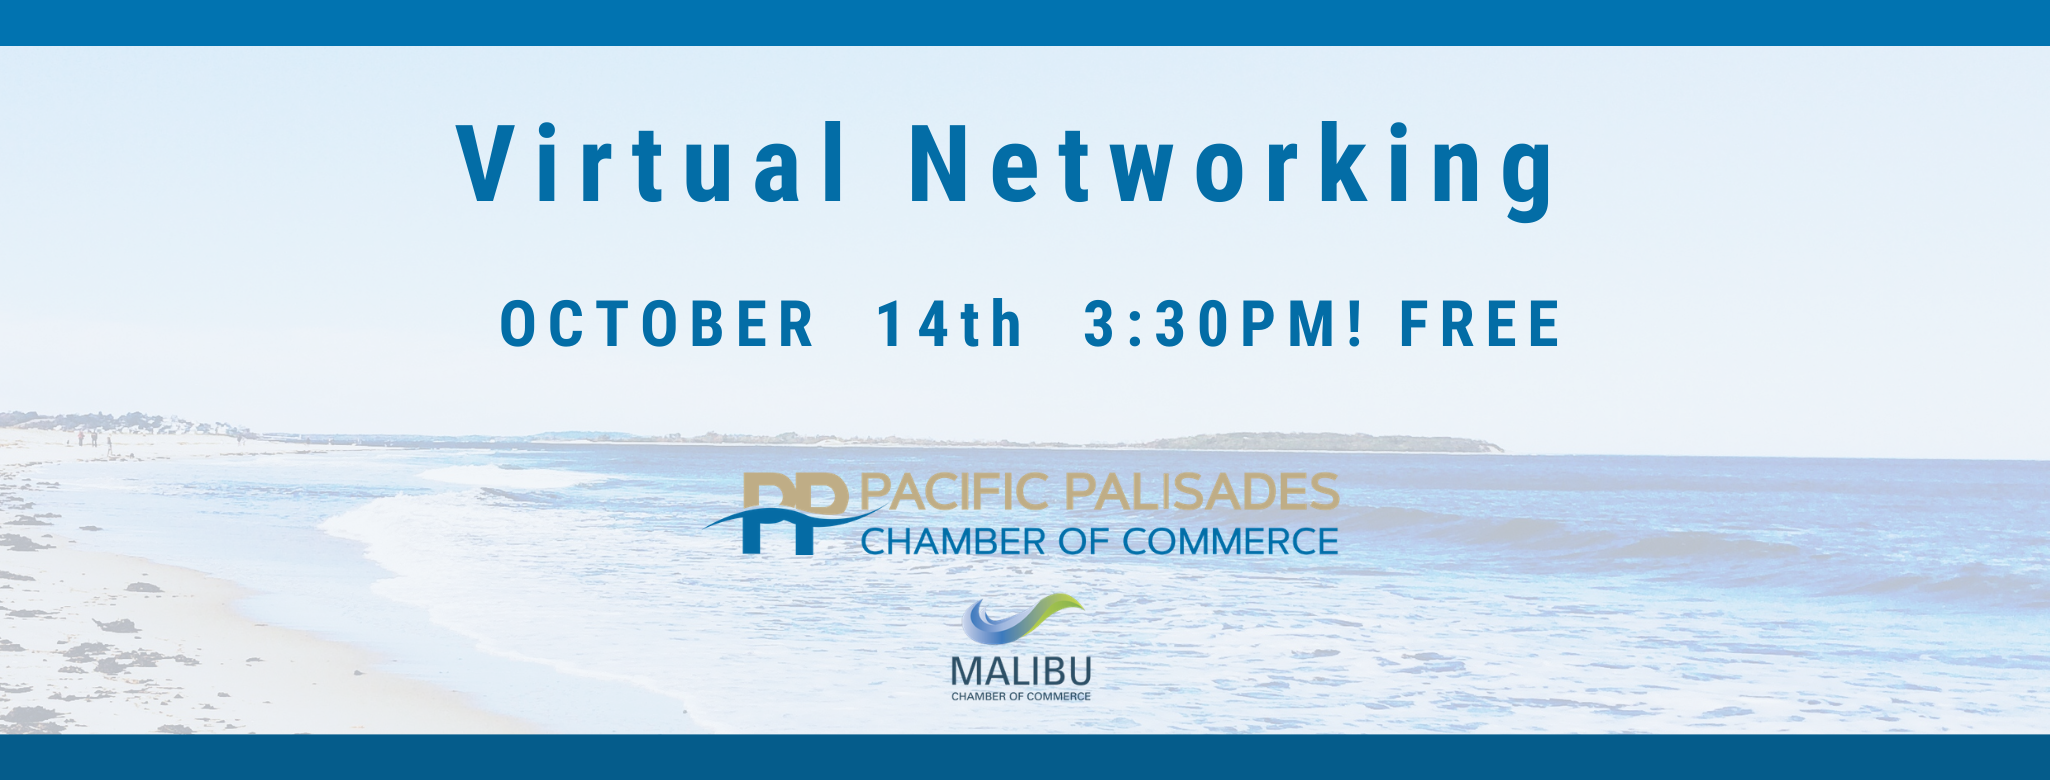 Virtual Networking September 9th 3_30PM! FREE (2)